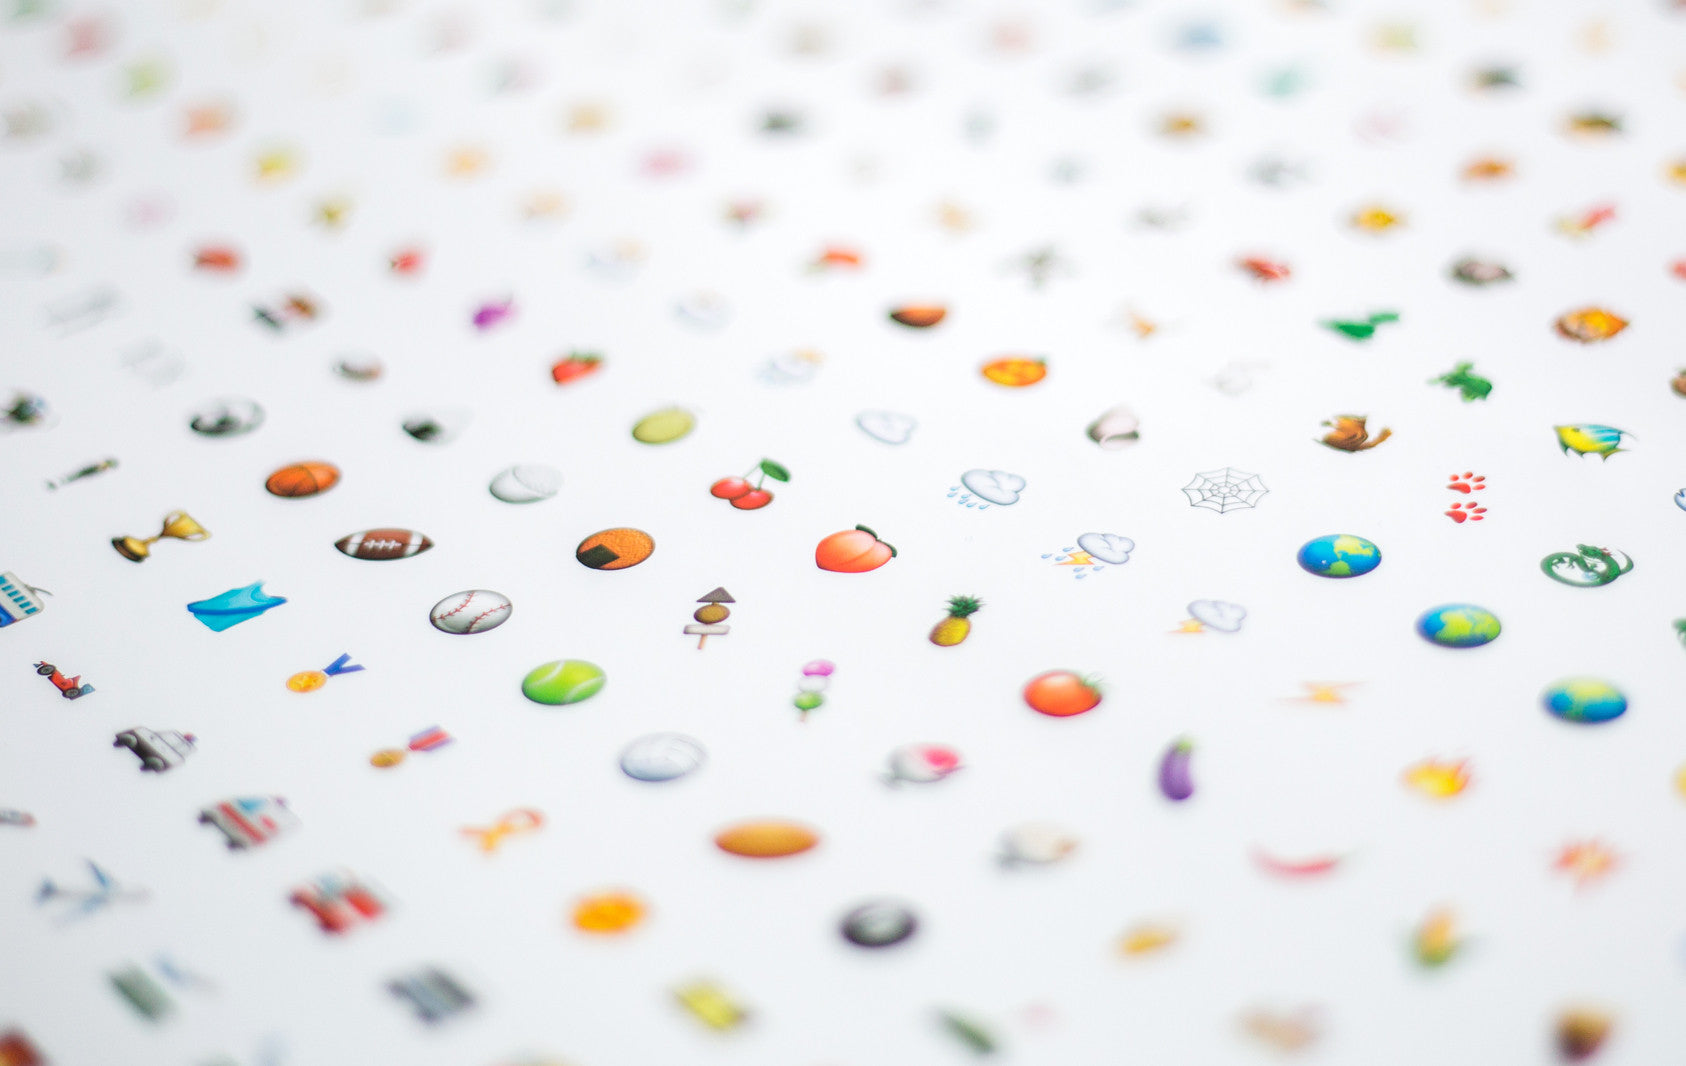 emoji poster print quality close-up